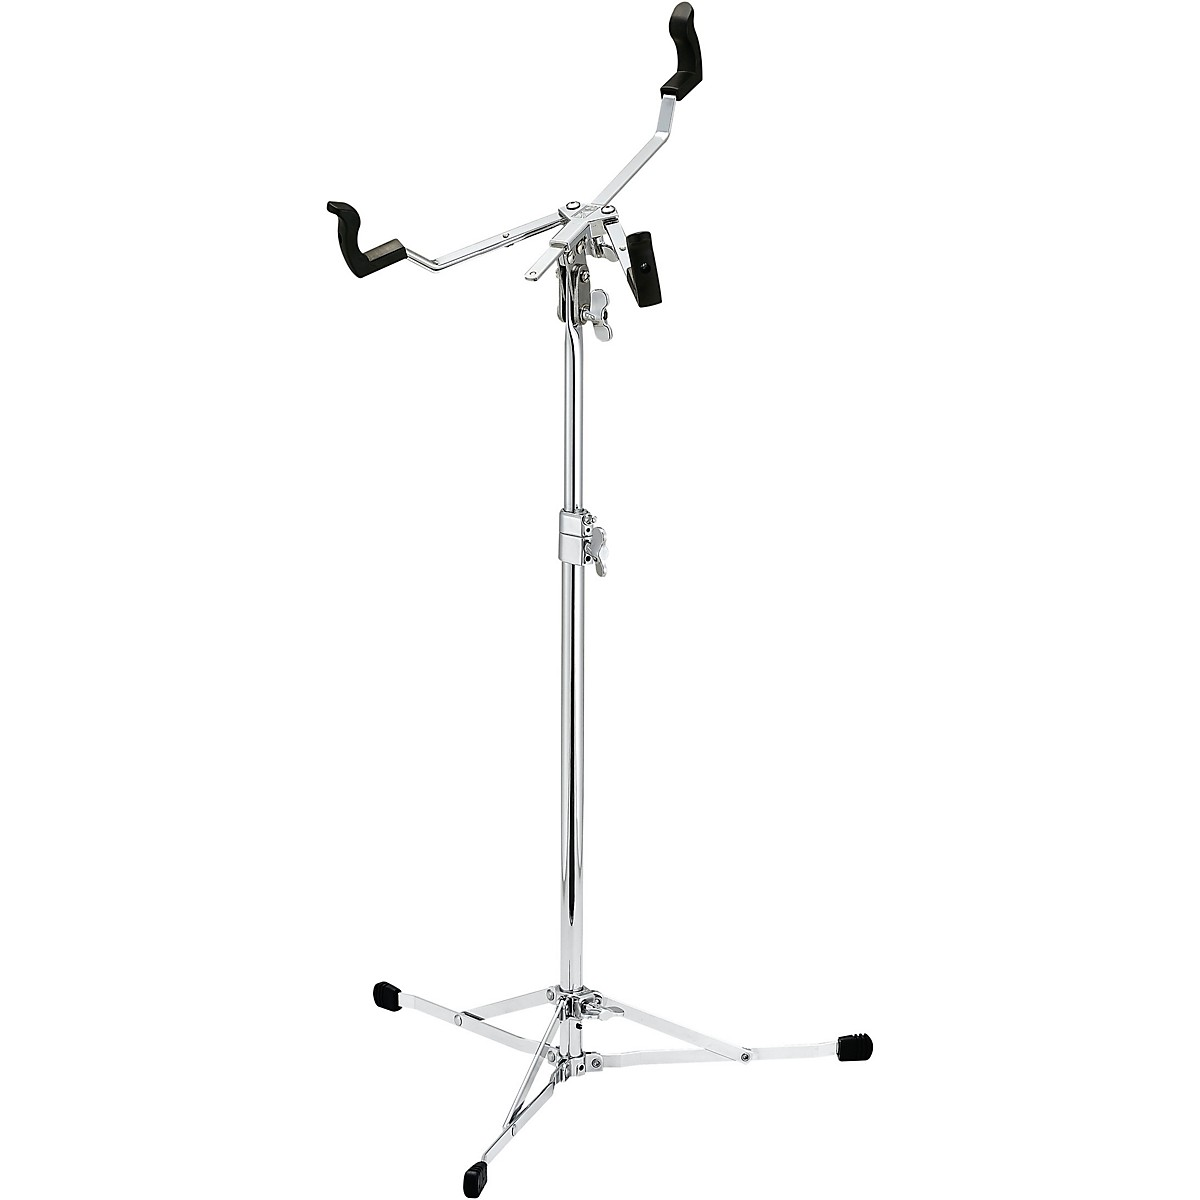 TAMA The Classic High-Profile Snare Stand with Single-Braced Legs